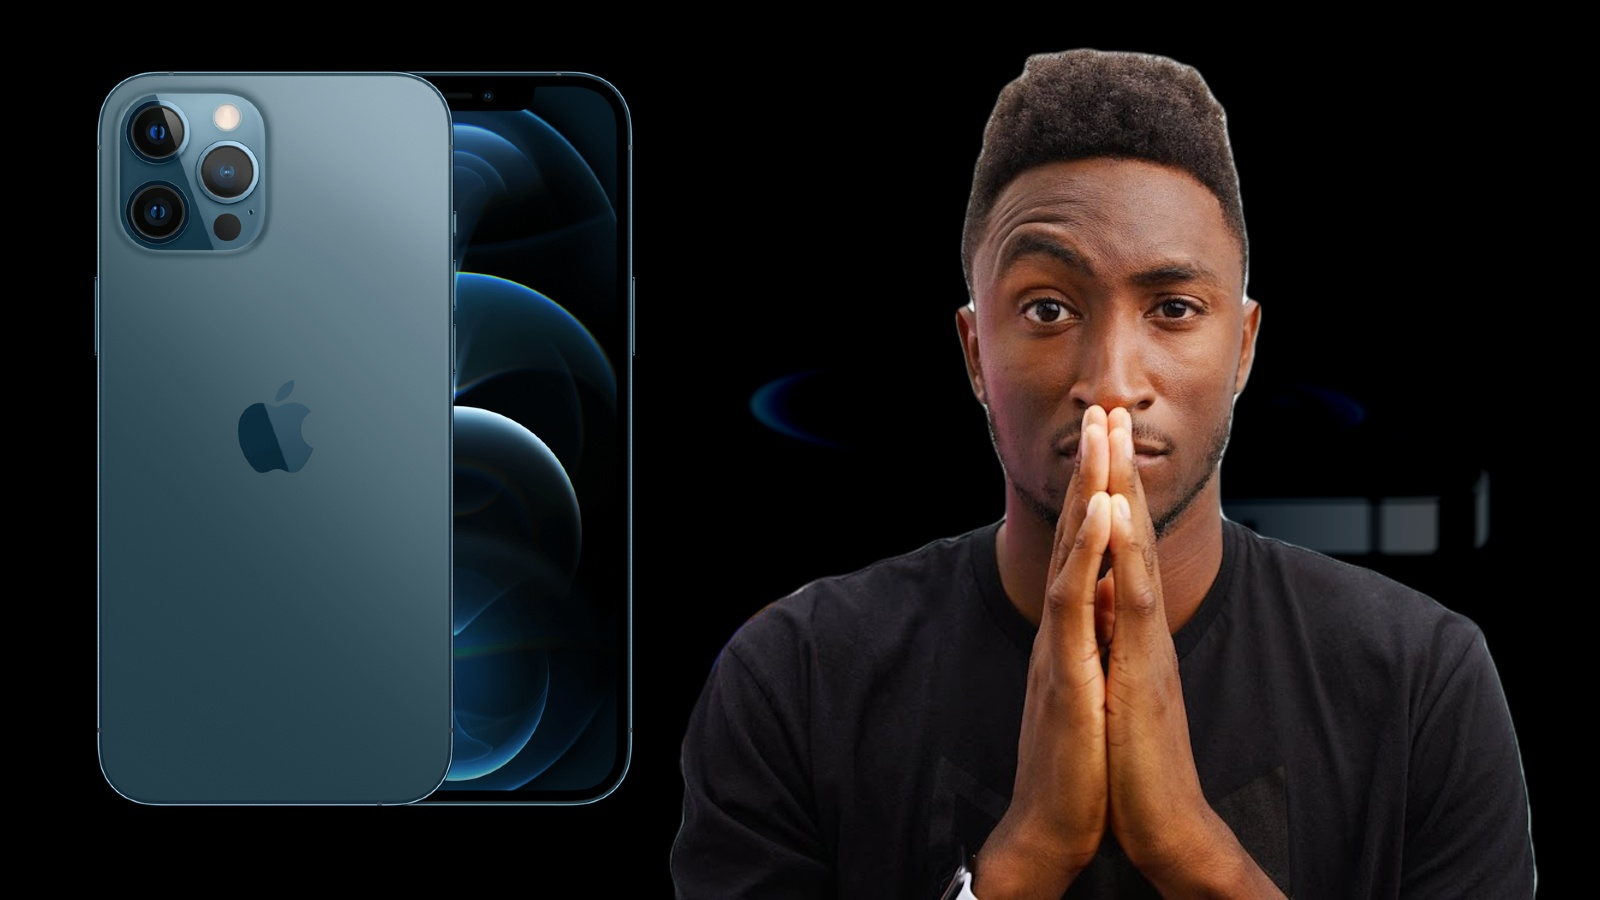 Marques Brownlee on iPhone 12 Pro Max